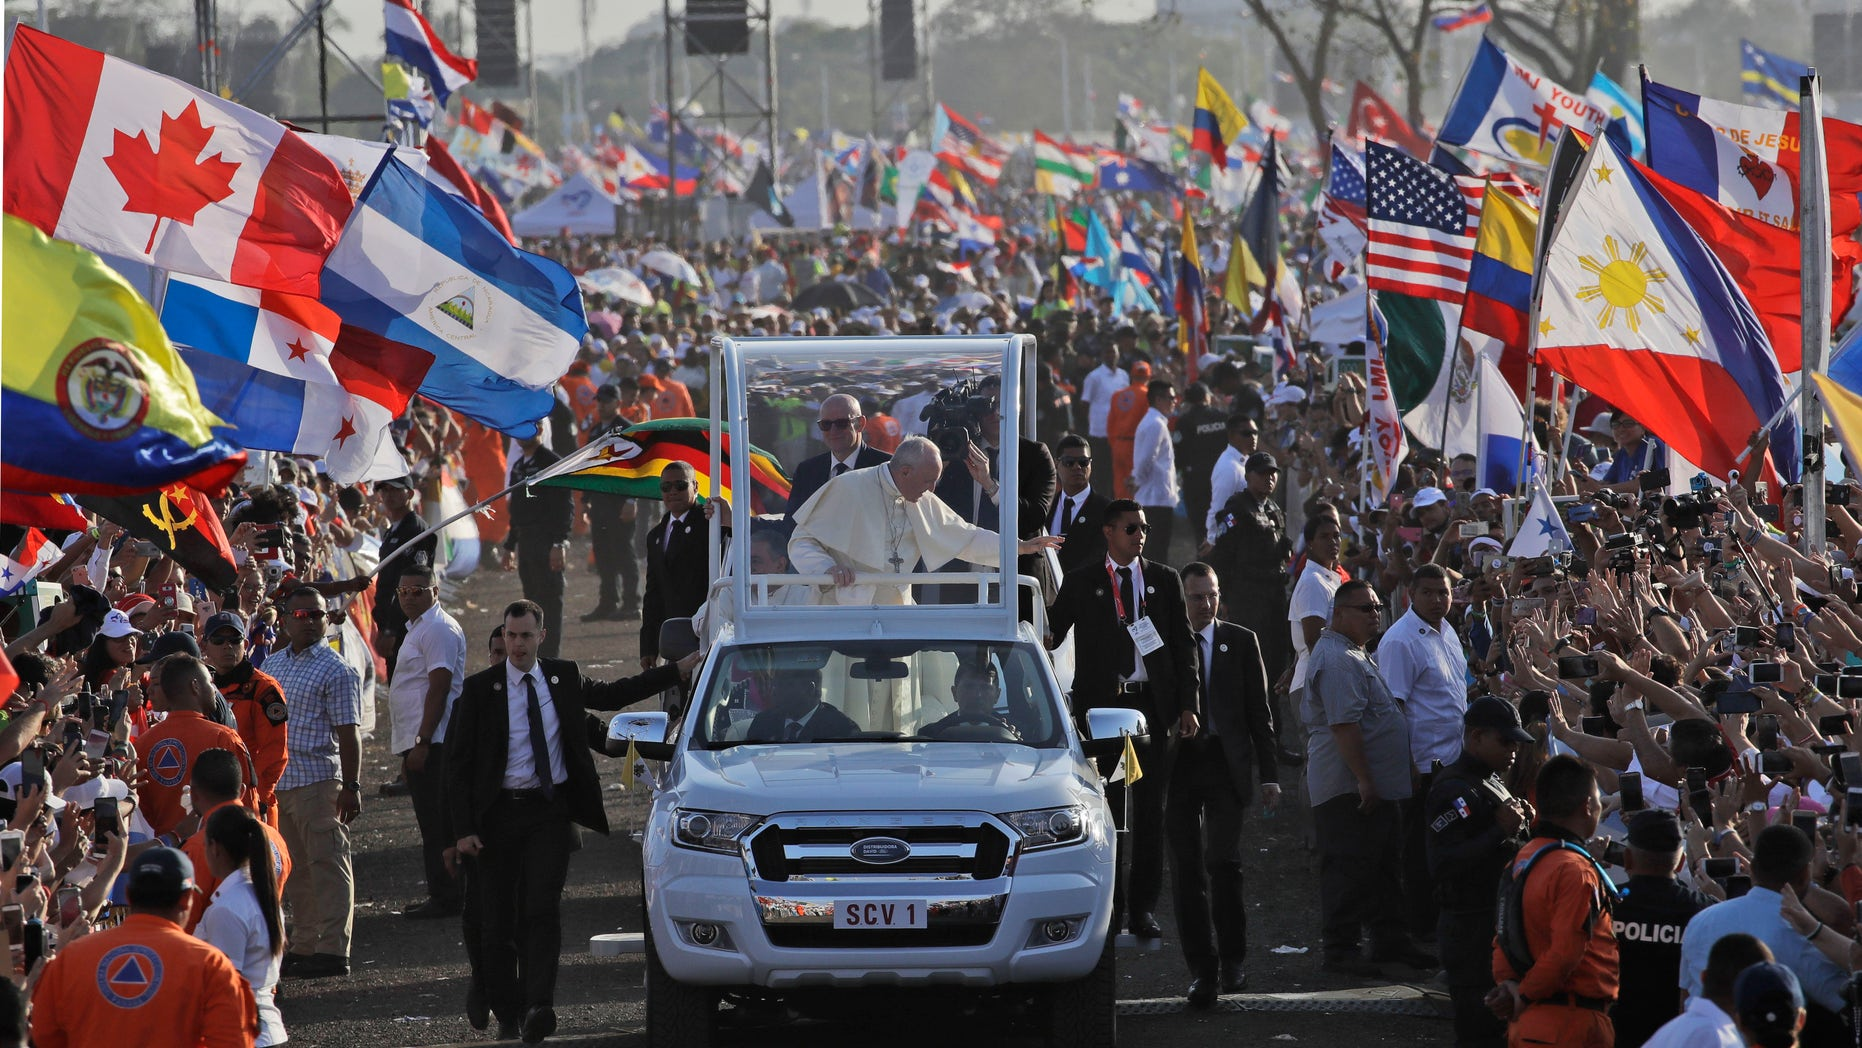 Pope Francis arrives in his popemobile to close out World Youth Day in Panama City, Panama in a mass on Sunday attended by an estimated 700,000 people